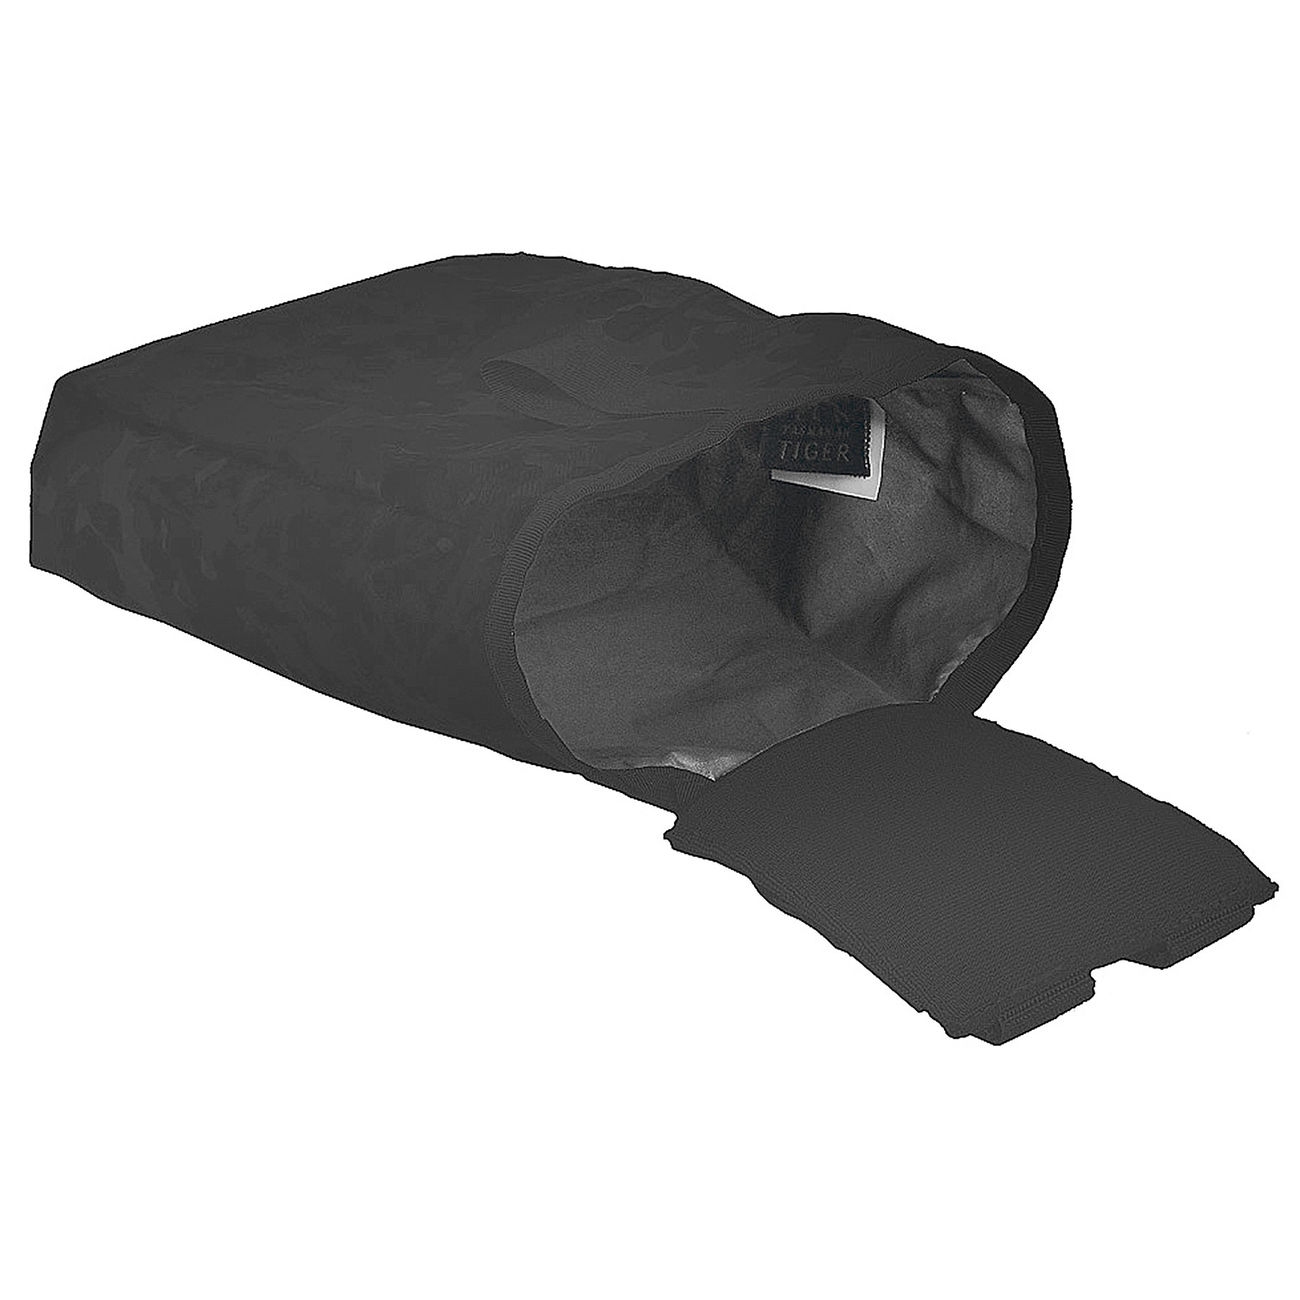 TT Dump Pouch light schwarz 2